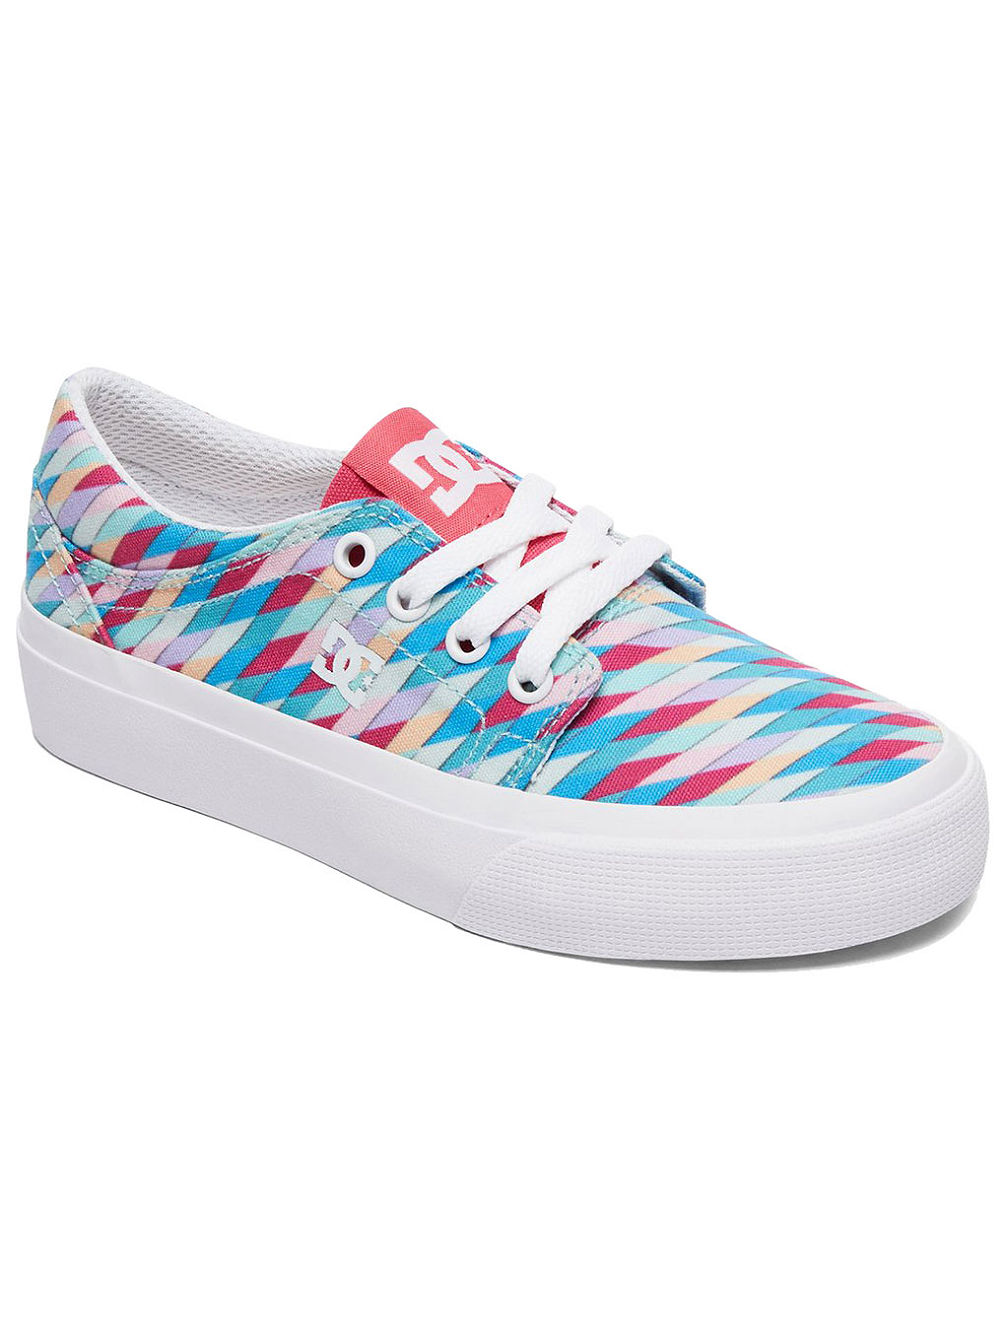 Trase SP Sneakers Girls